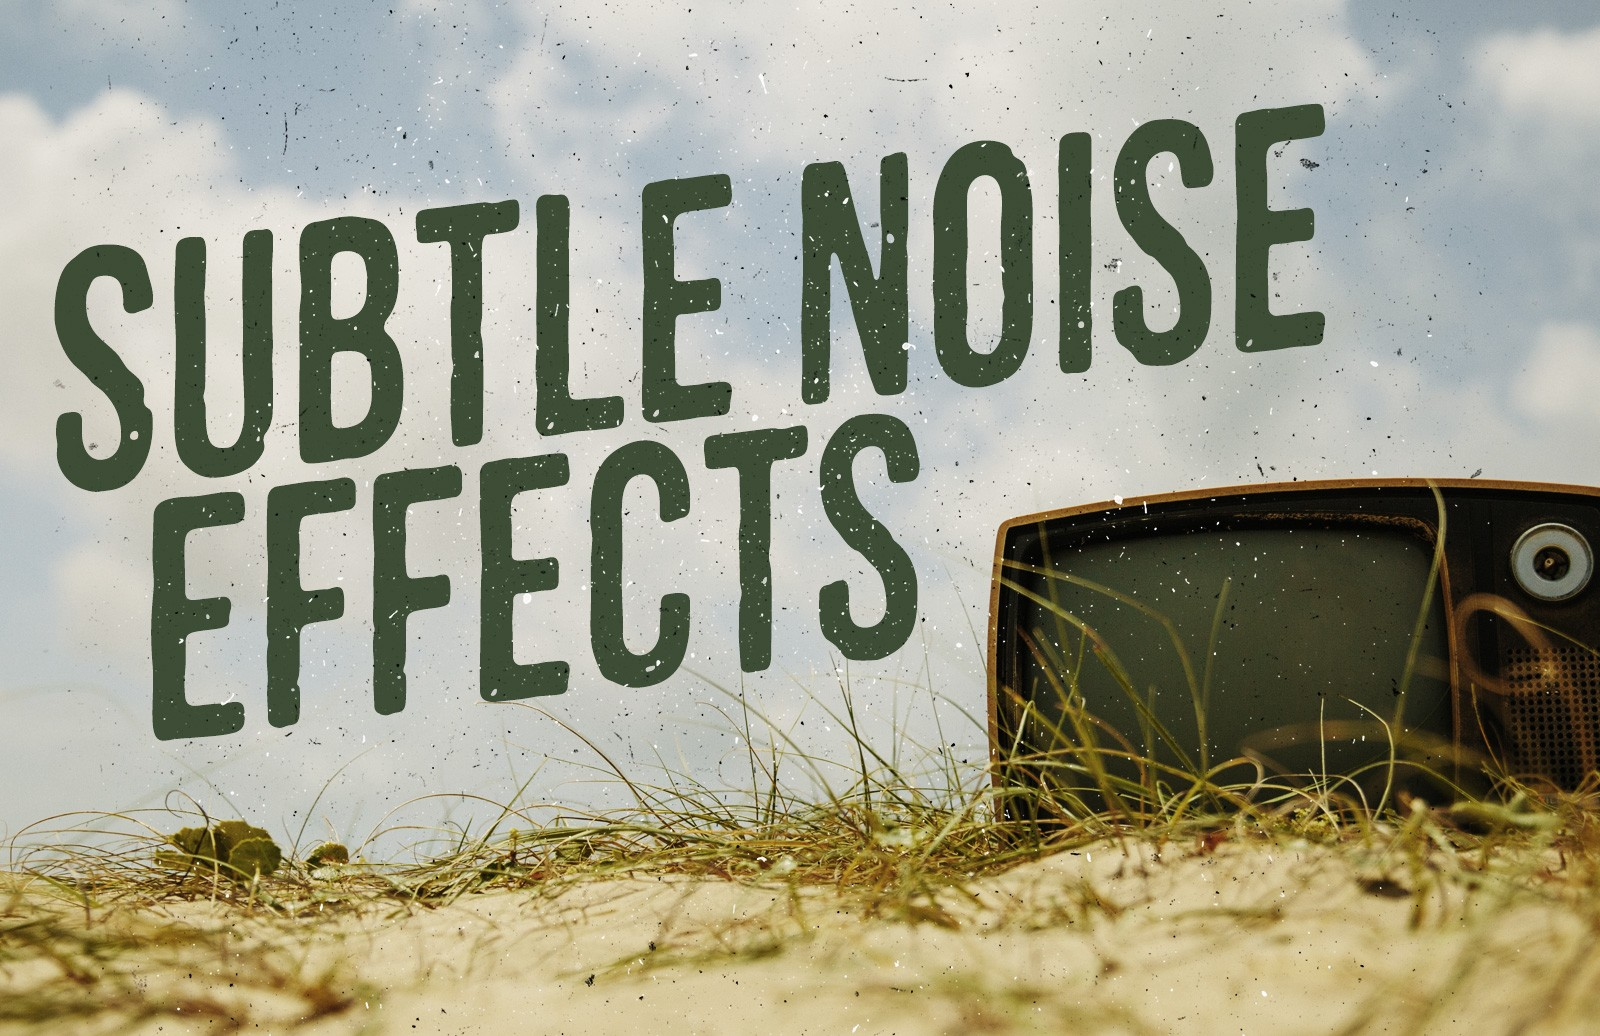 Subtle Noise Effects – Brushes, Bitmaps and More